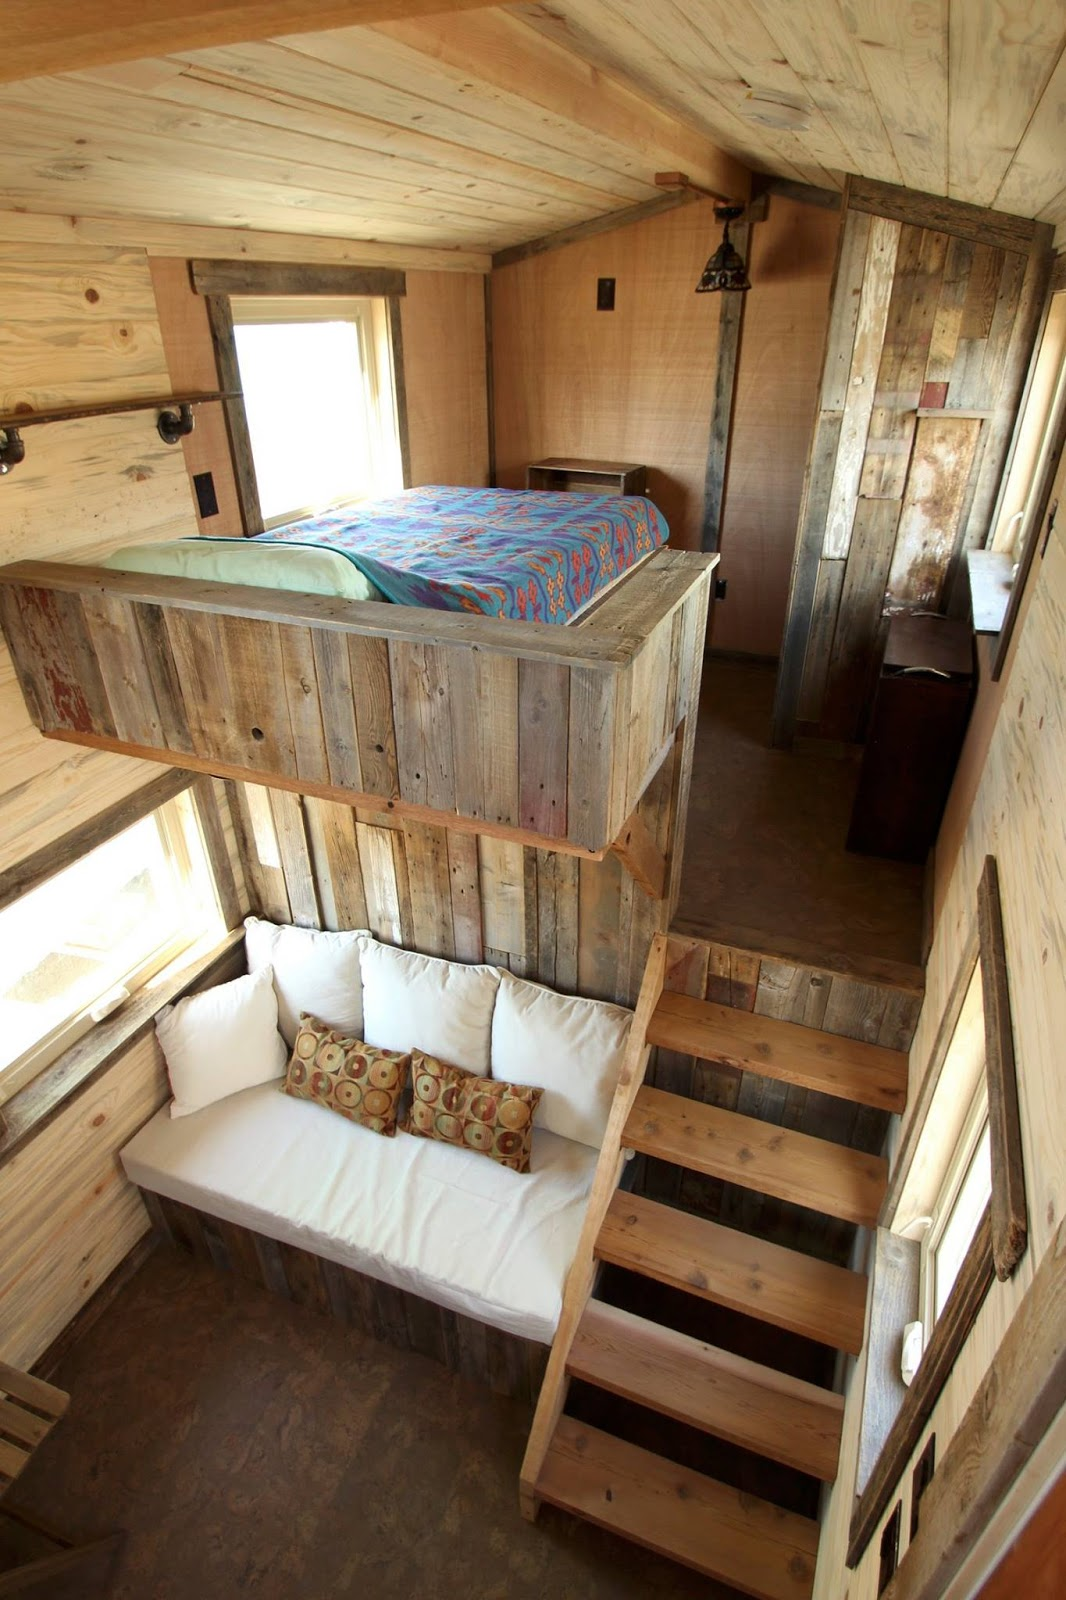 Tiny house town jj 39 s place from simblissity tiny homes - Best rustic interior design ideas beauty of simplicity ...